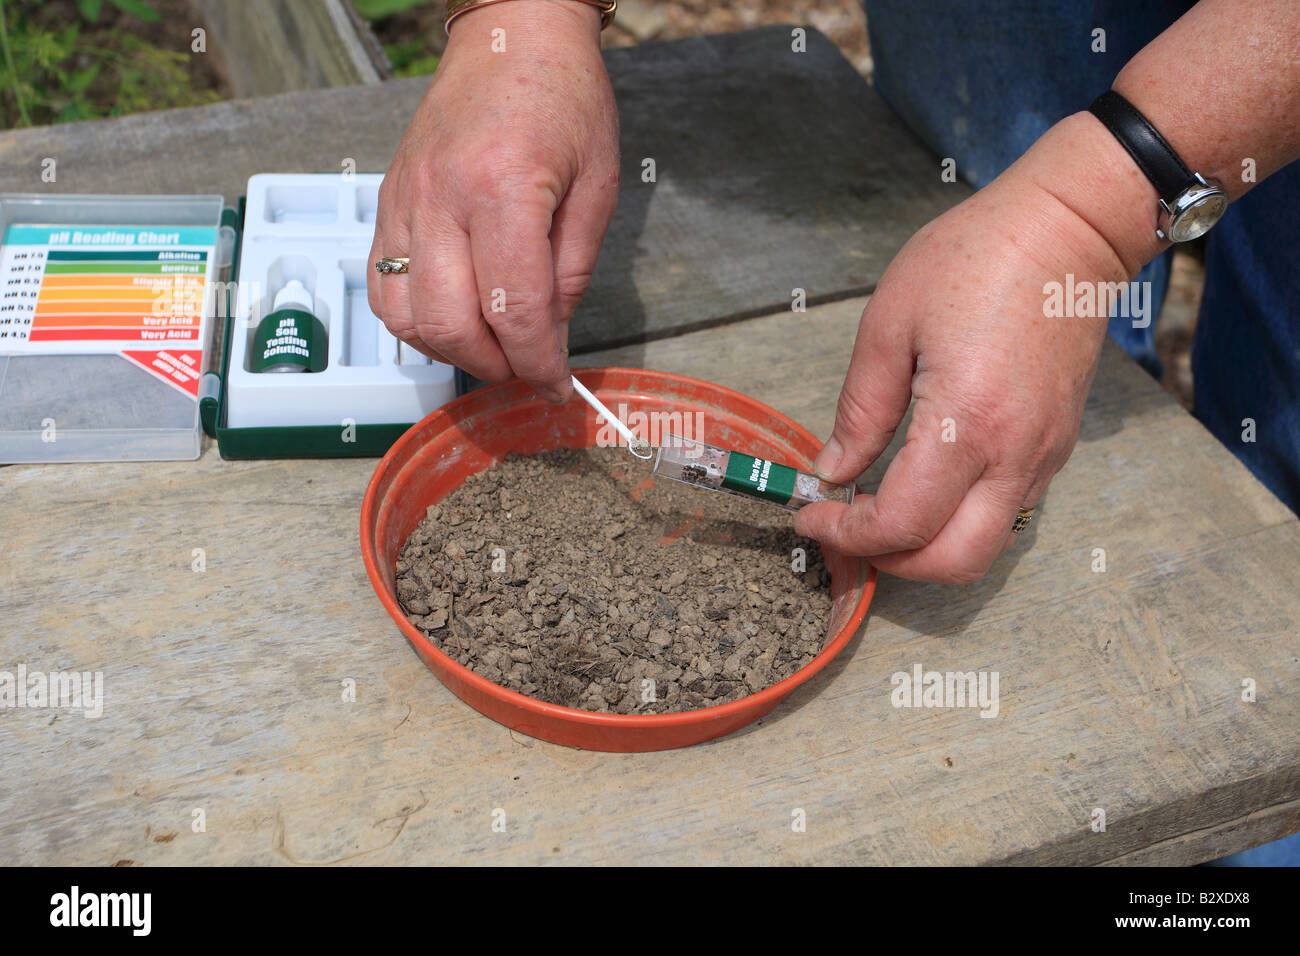 SOILTESTING pH STEP 1 USING A SMALL SPOON ADD DRY FINE SOIL TO THE TEST TUBE - Stock Image